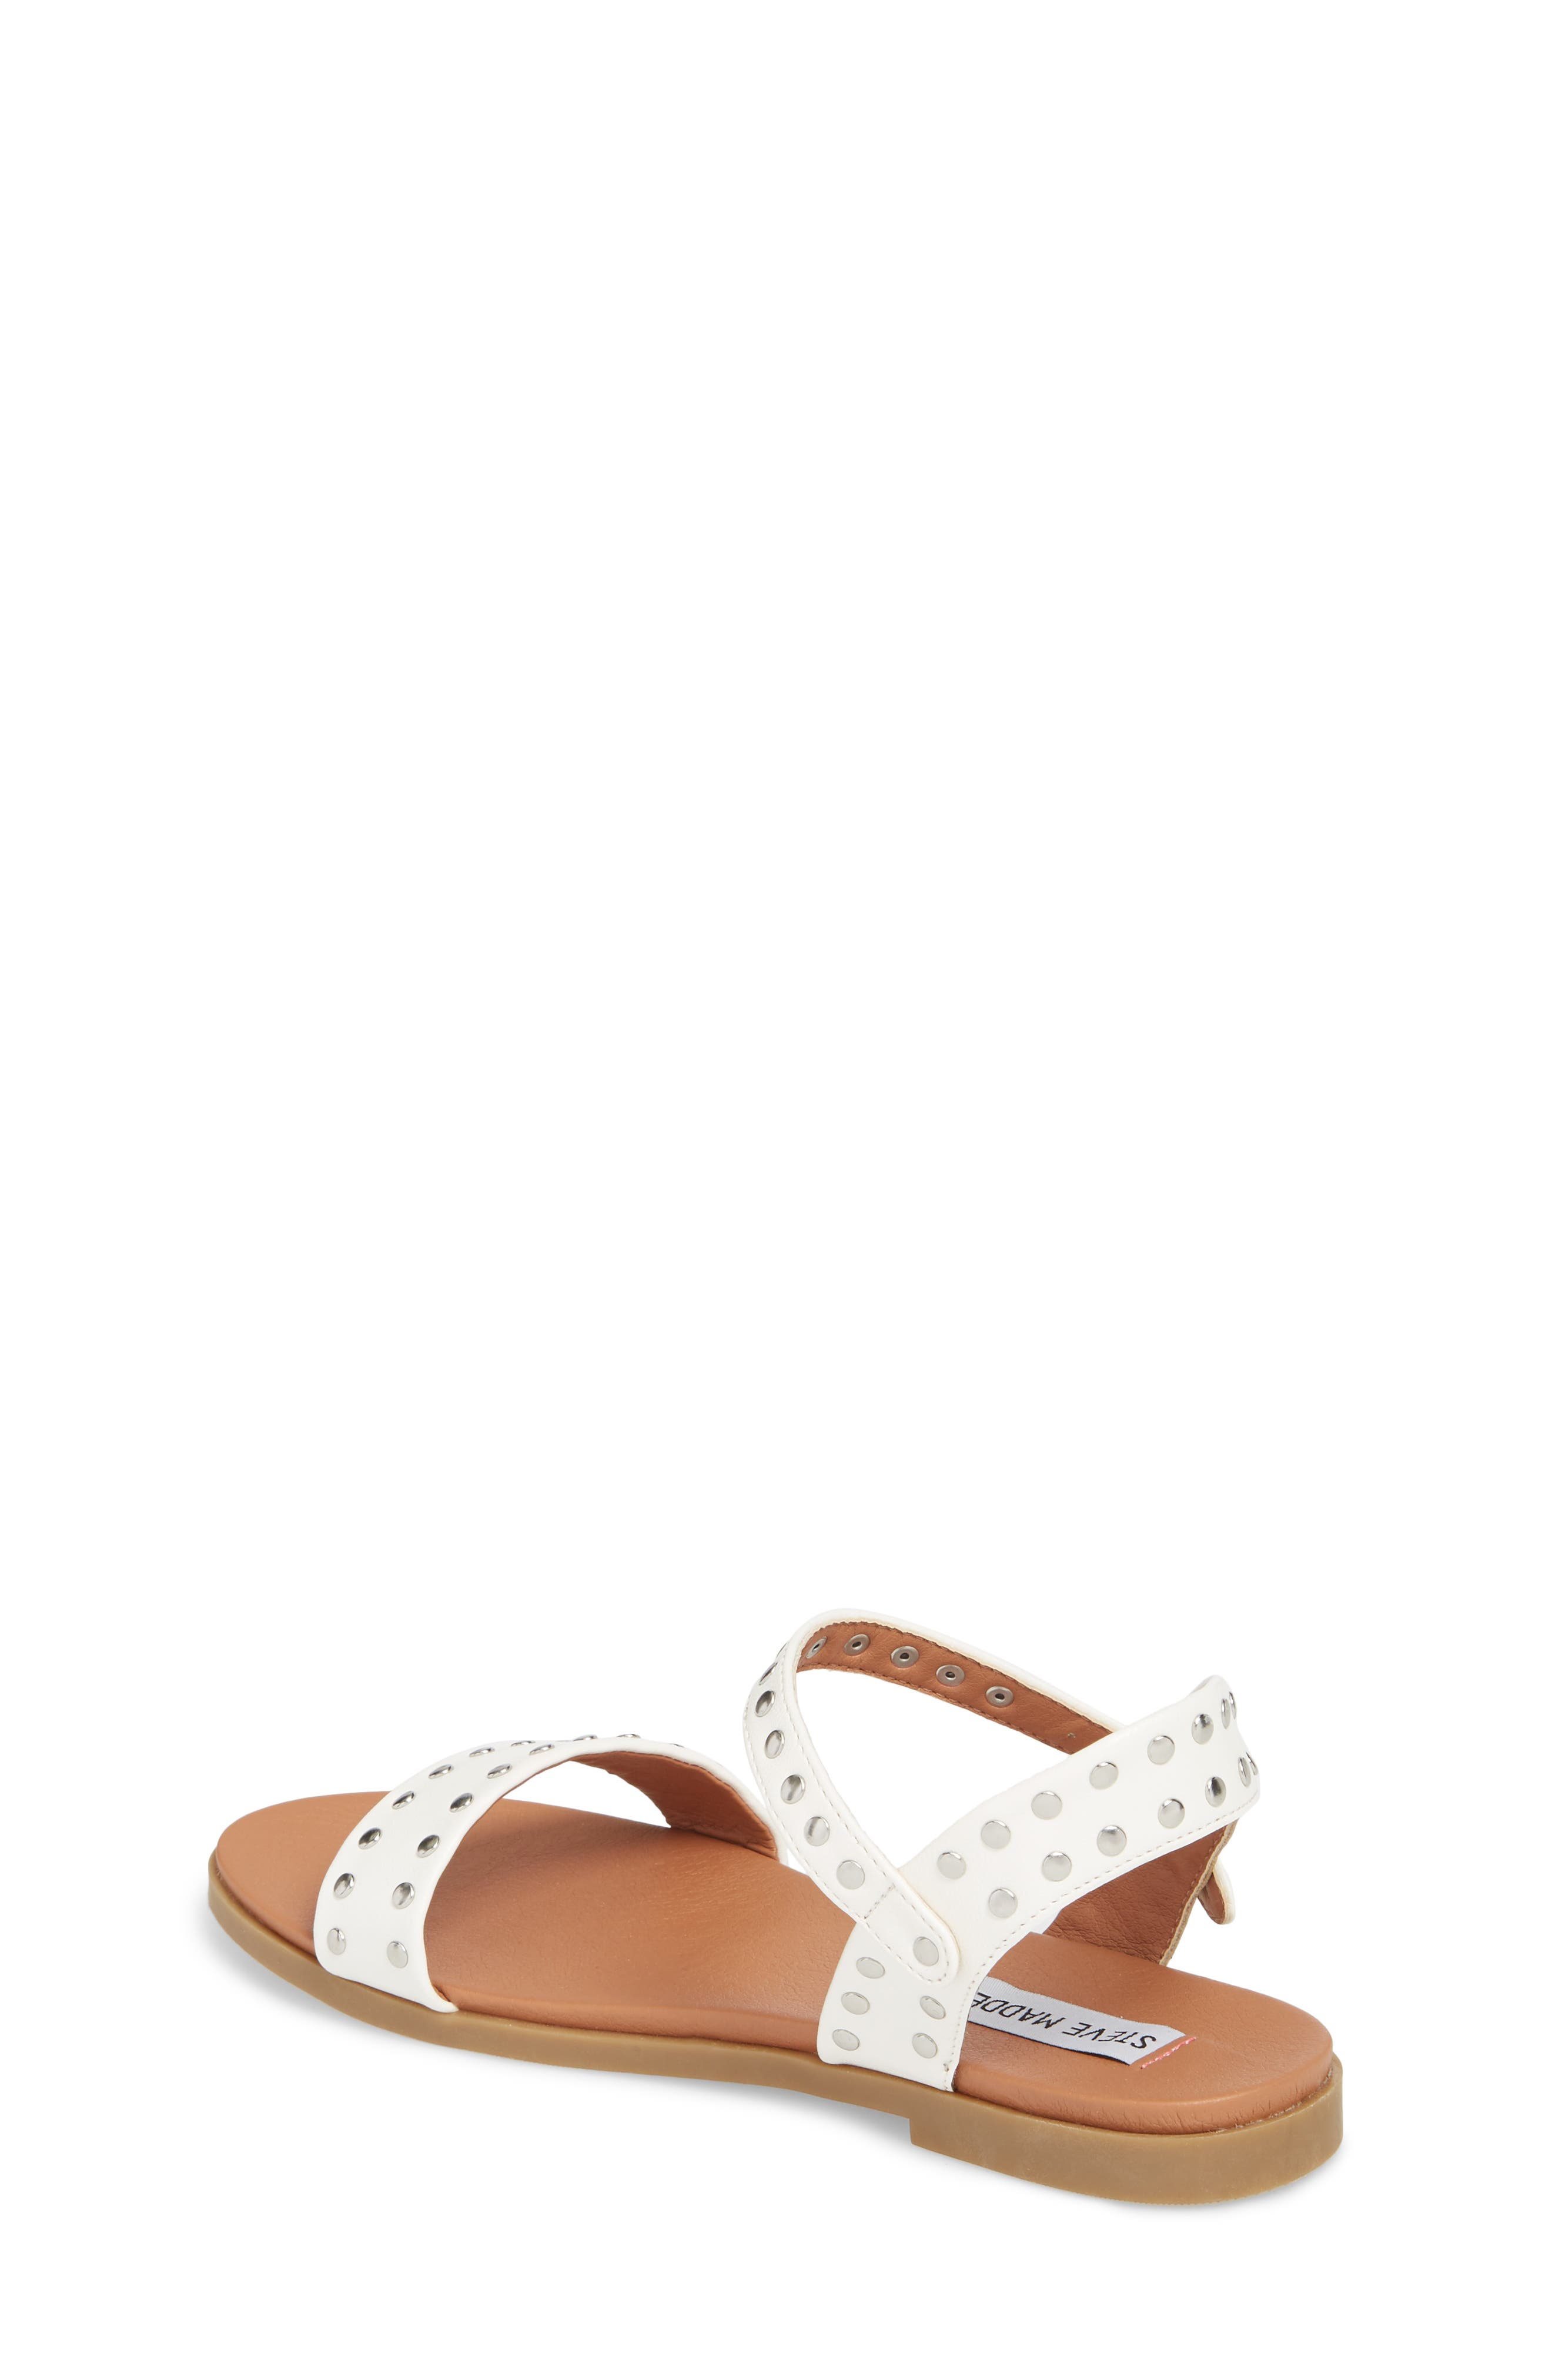 JDONDI Studded Sandal,                             Alternate thumbnail 2, color,                             WHITE